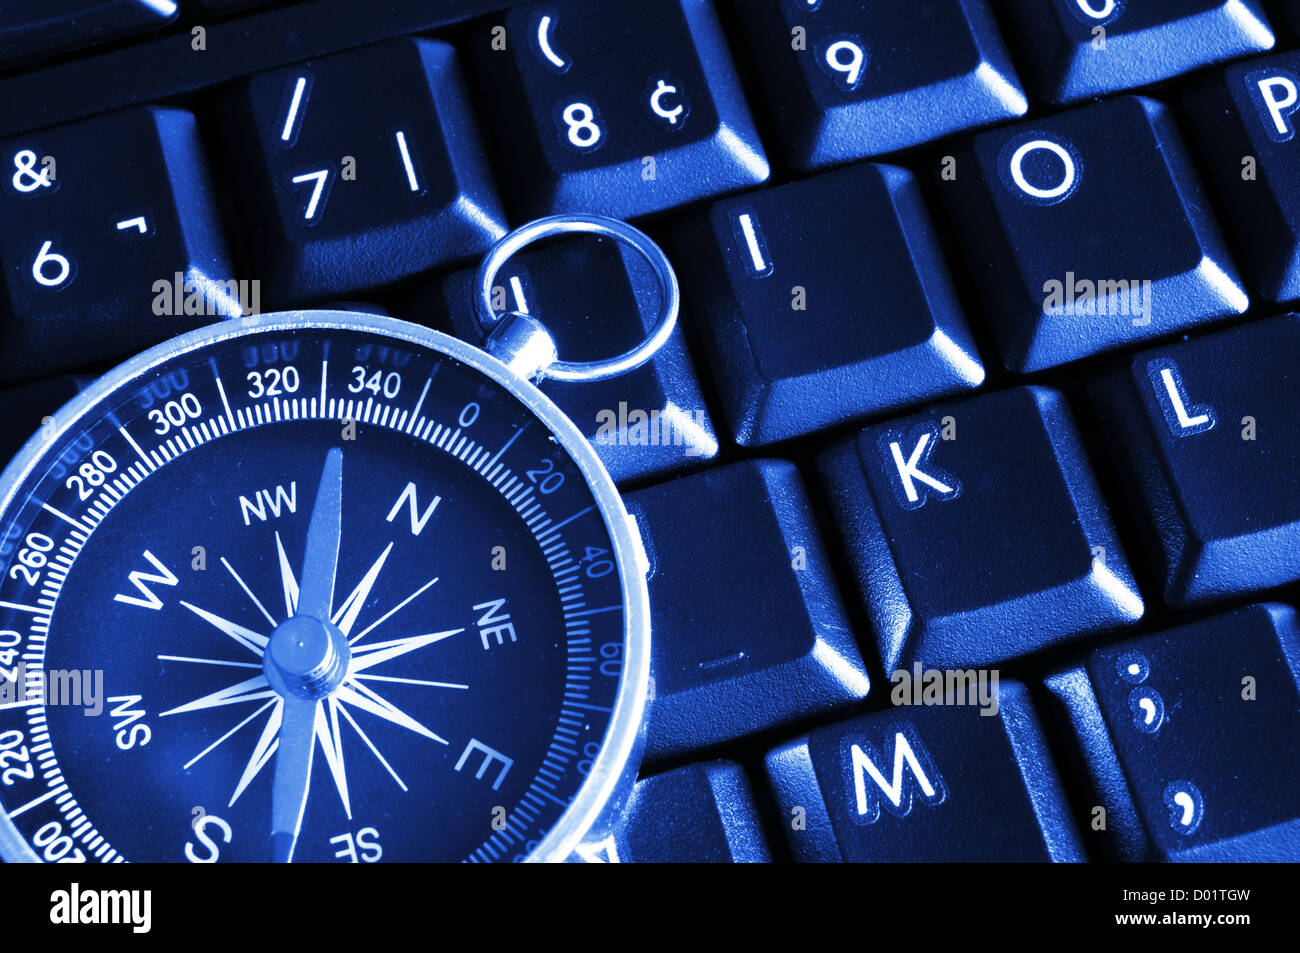 computer keyboard and compass showing internet navigation concept - Stock Image